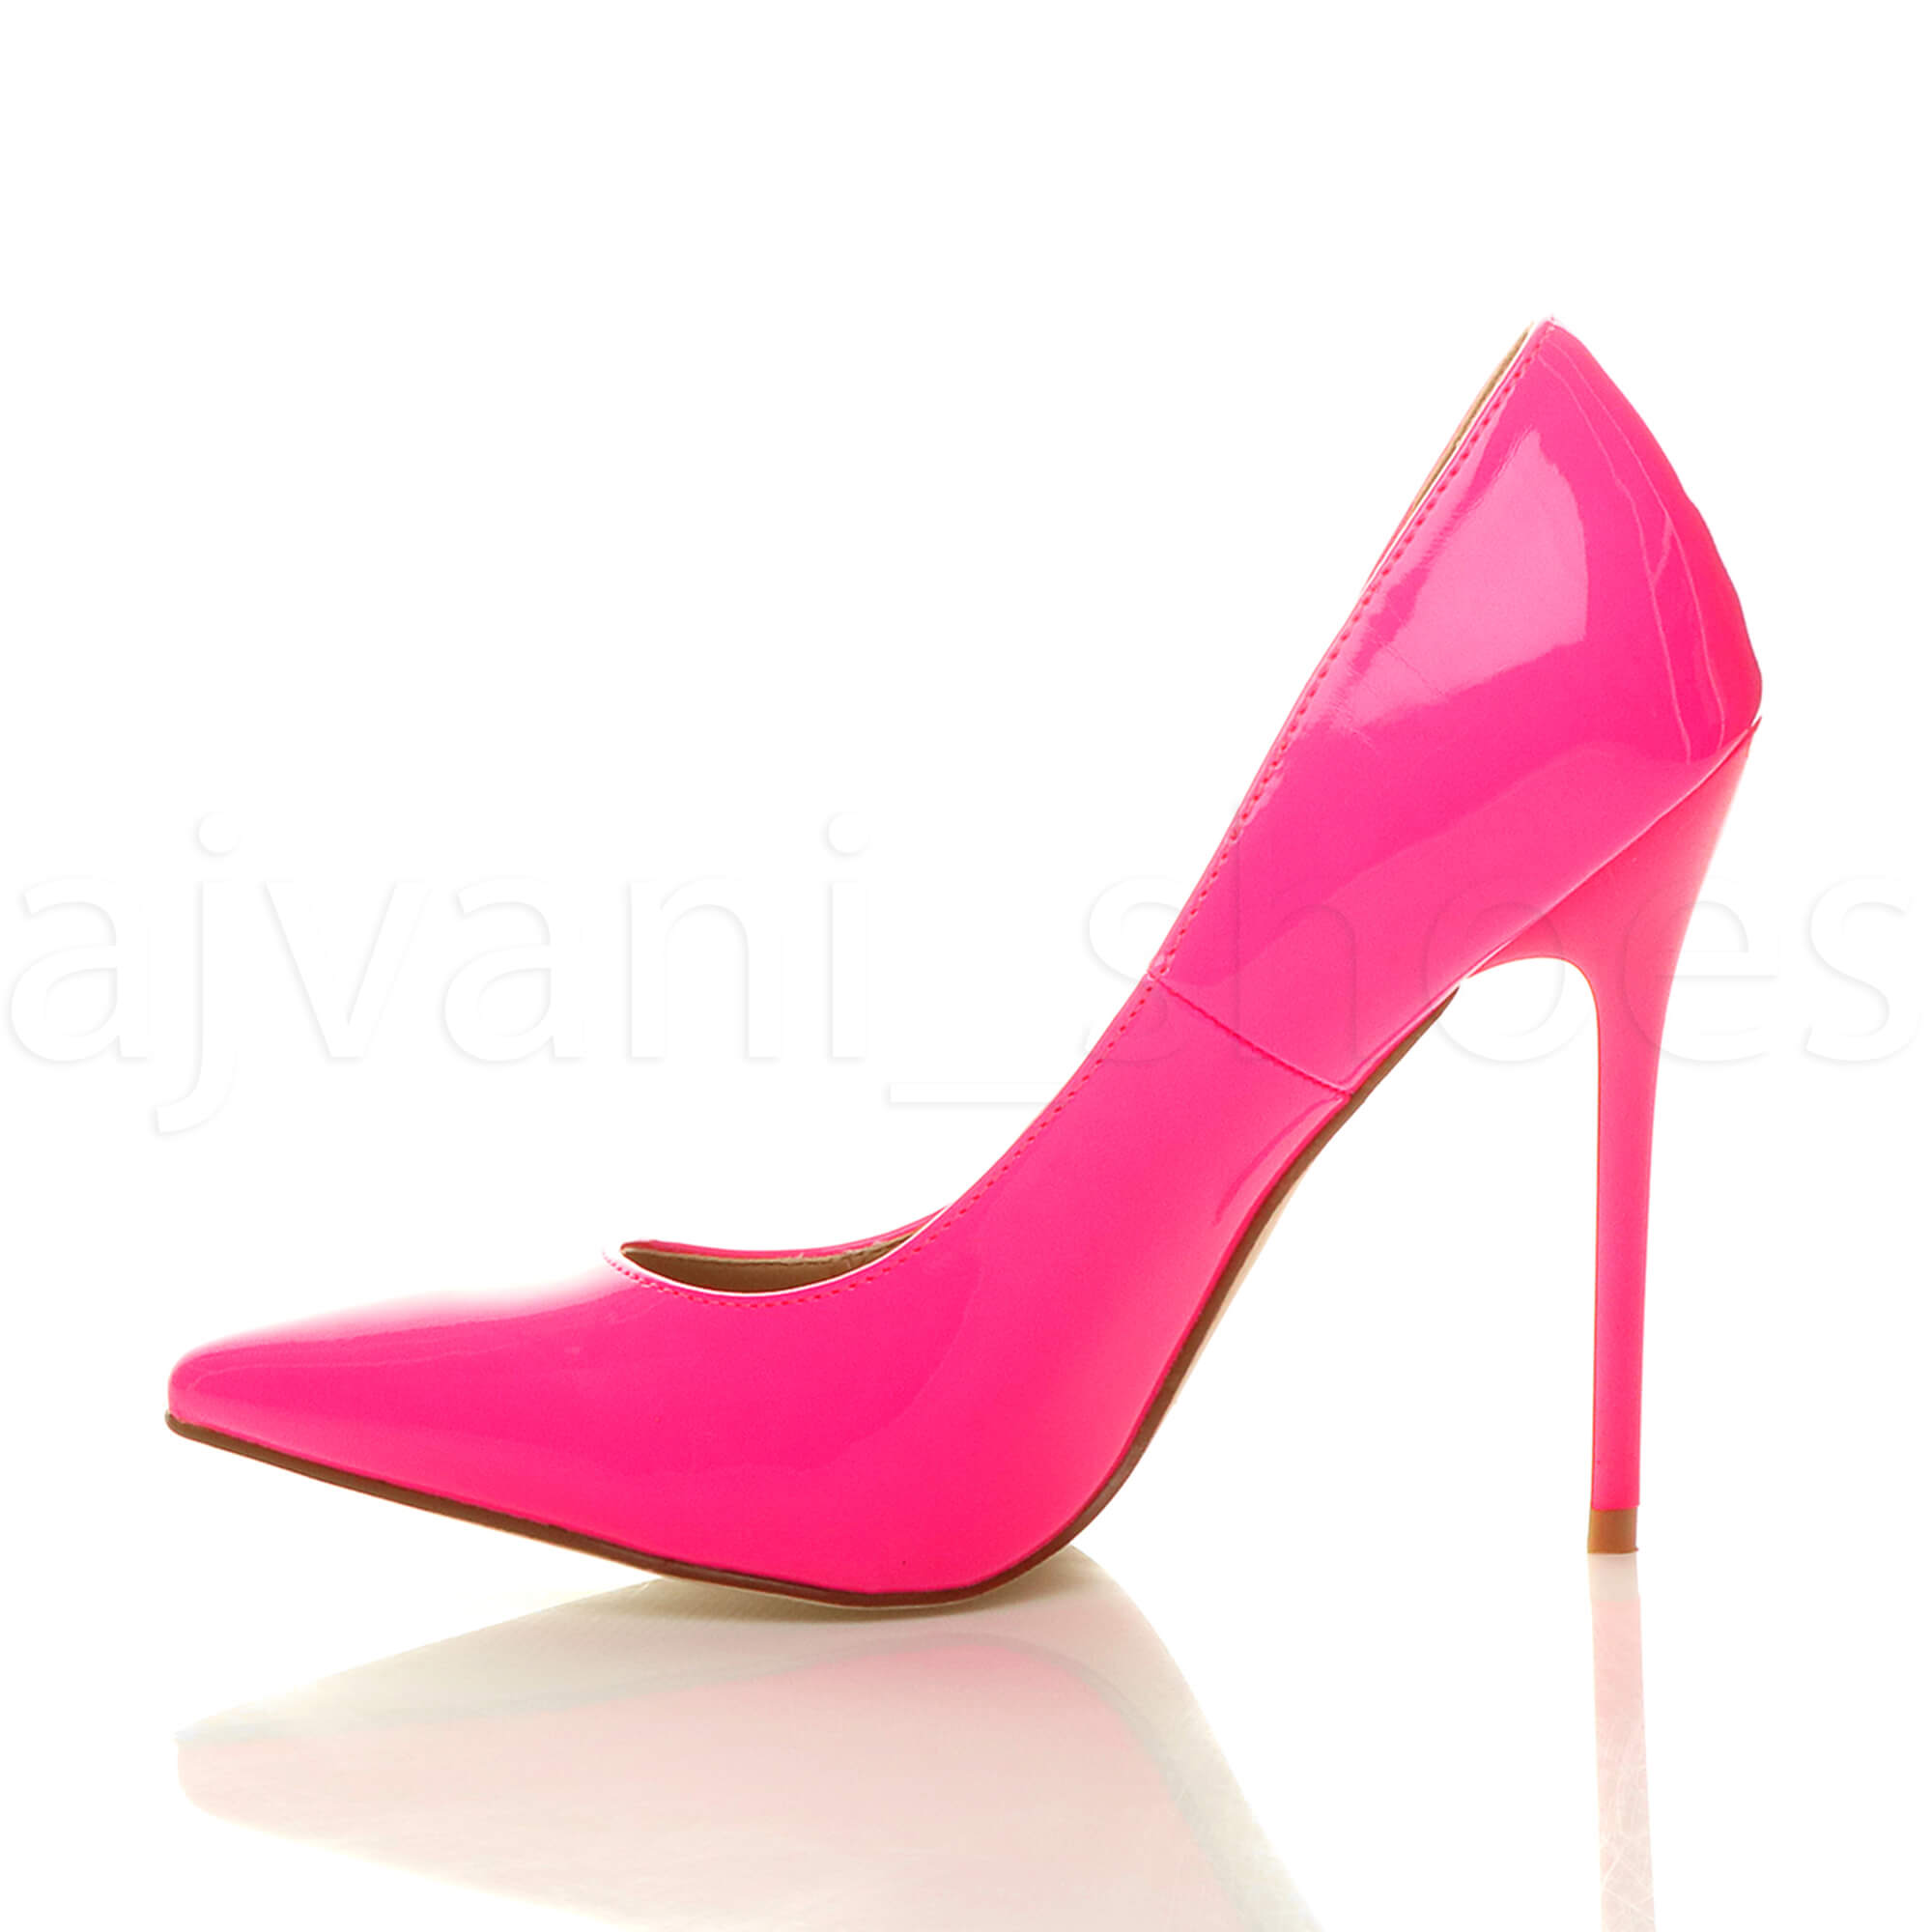 WOMENS-LADIES-HIGH-HEEL-POINTED-CONTRAST-COURT-SMART-PARTY-WORK-SHOES-PUMPS-SIZE thumbnail 106